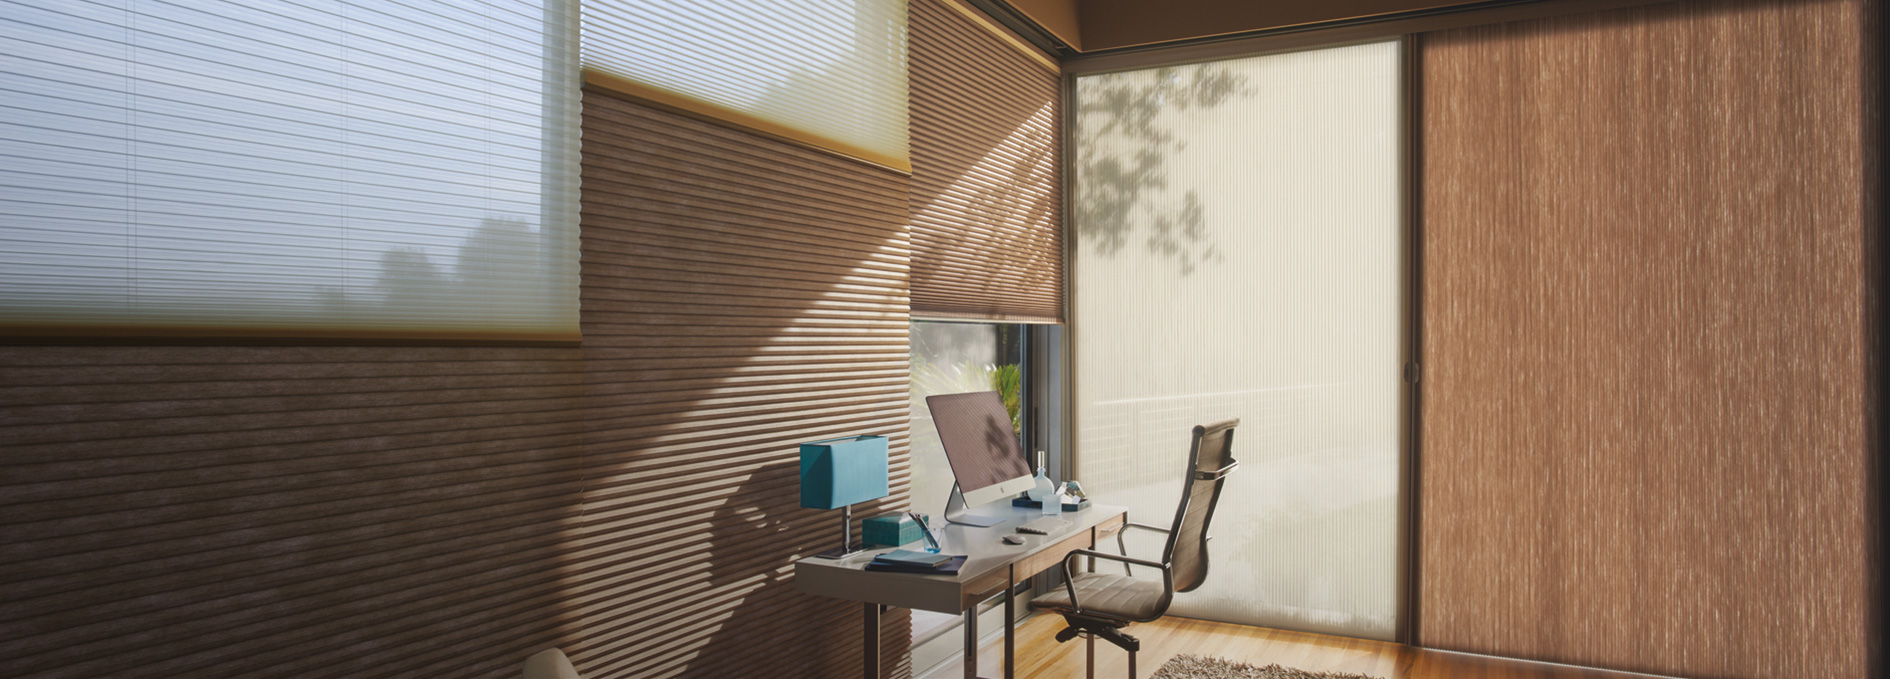 Hunter Douglas Applause Honeycomb Shades Today S Window Fashions Andover Mn